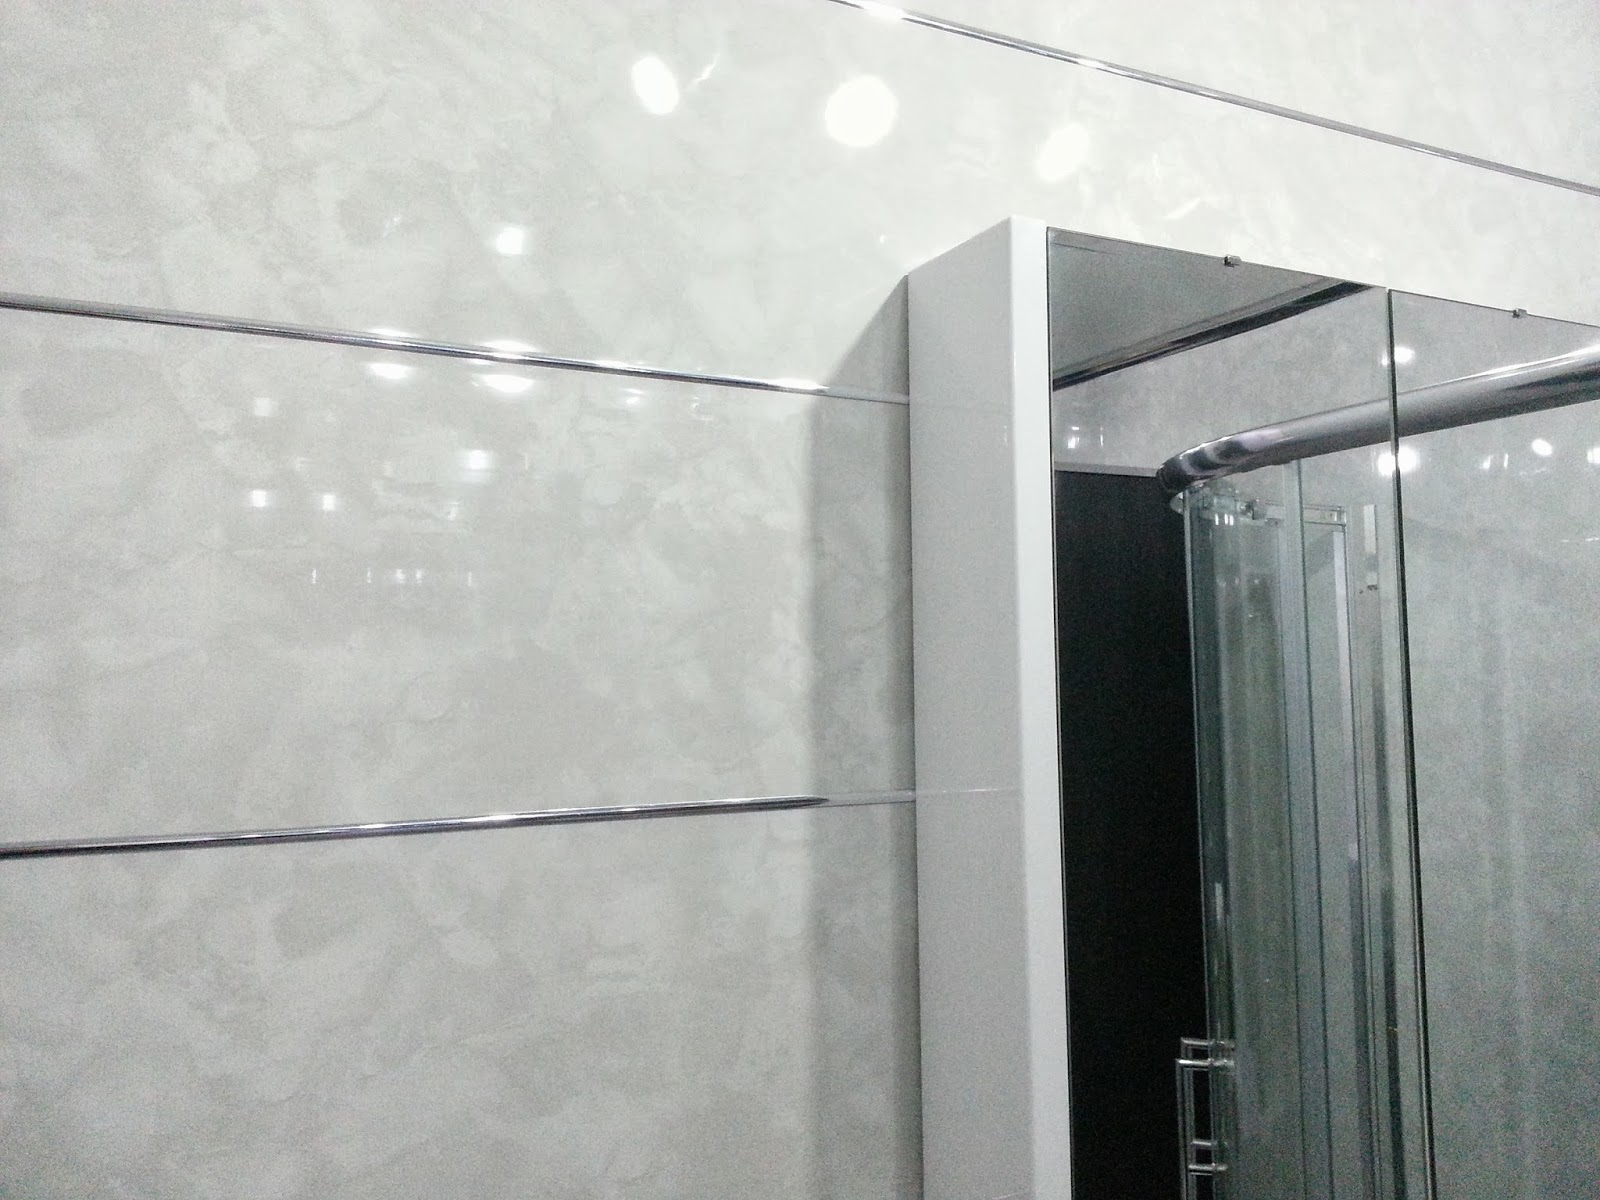 Plastic sheets for bathroom walls - Marble Effect Panels